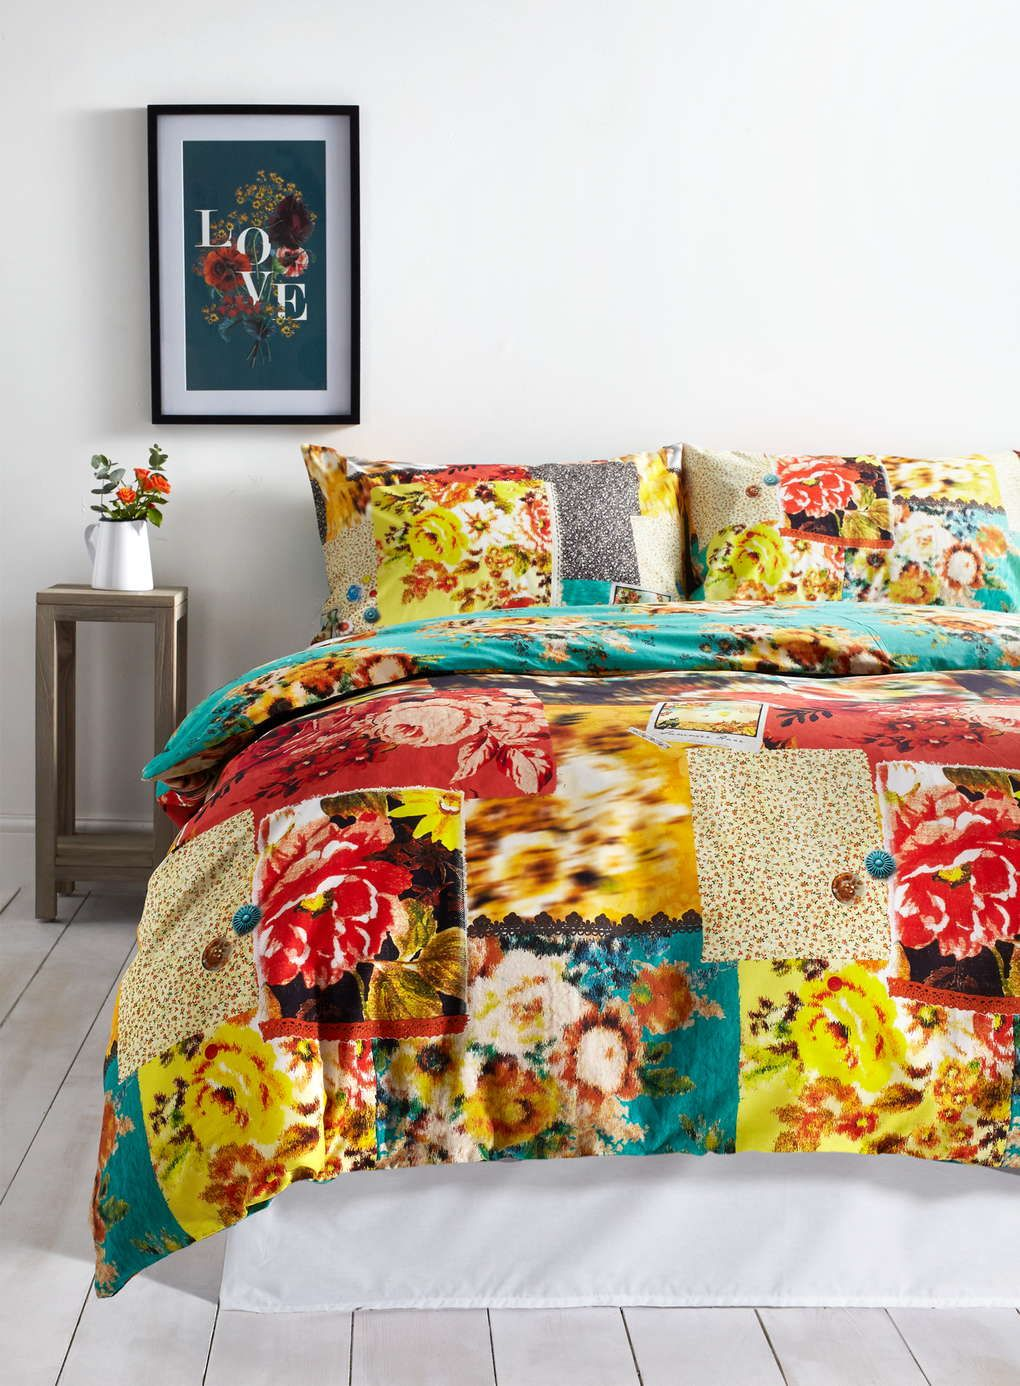 The Sweet Nostalgia Printed Bedding Set Patch Reversible Features Beautiful Fl Work Patterns With Intricate